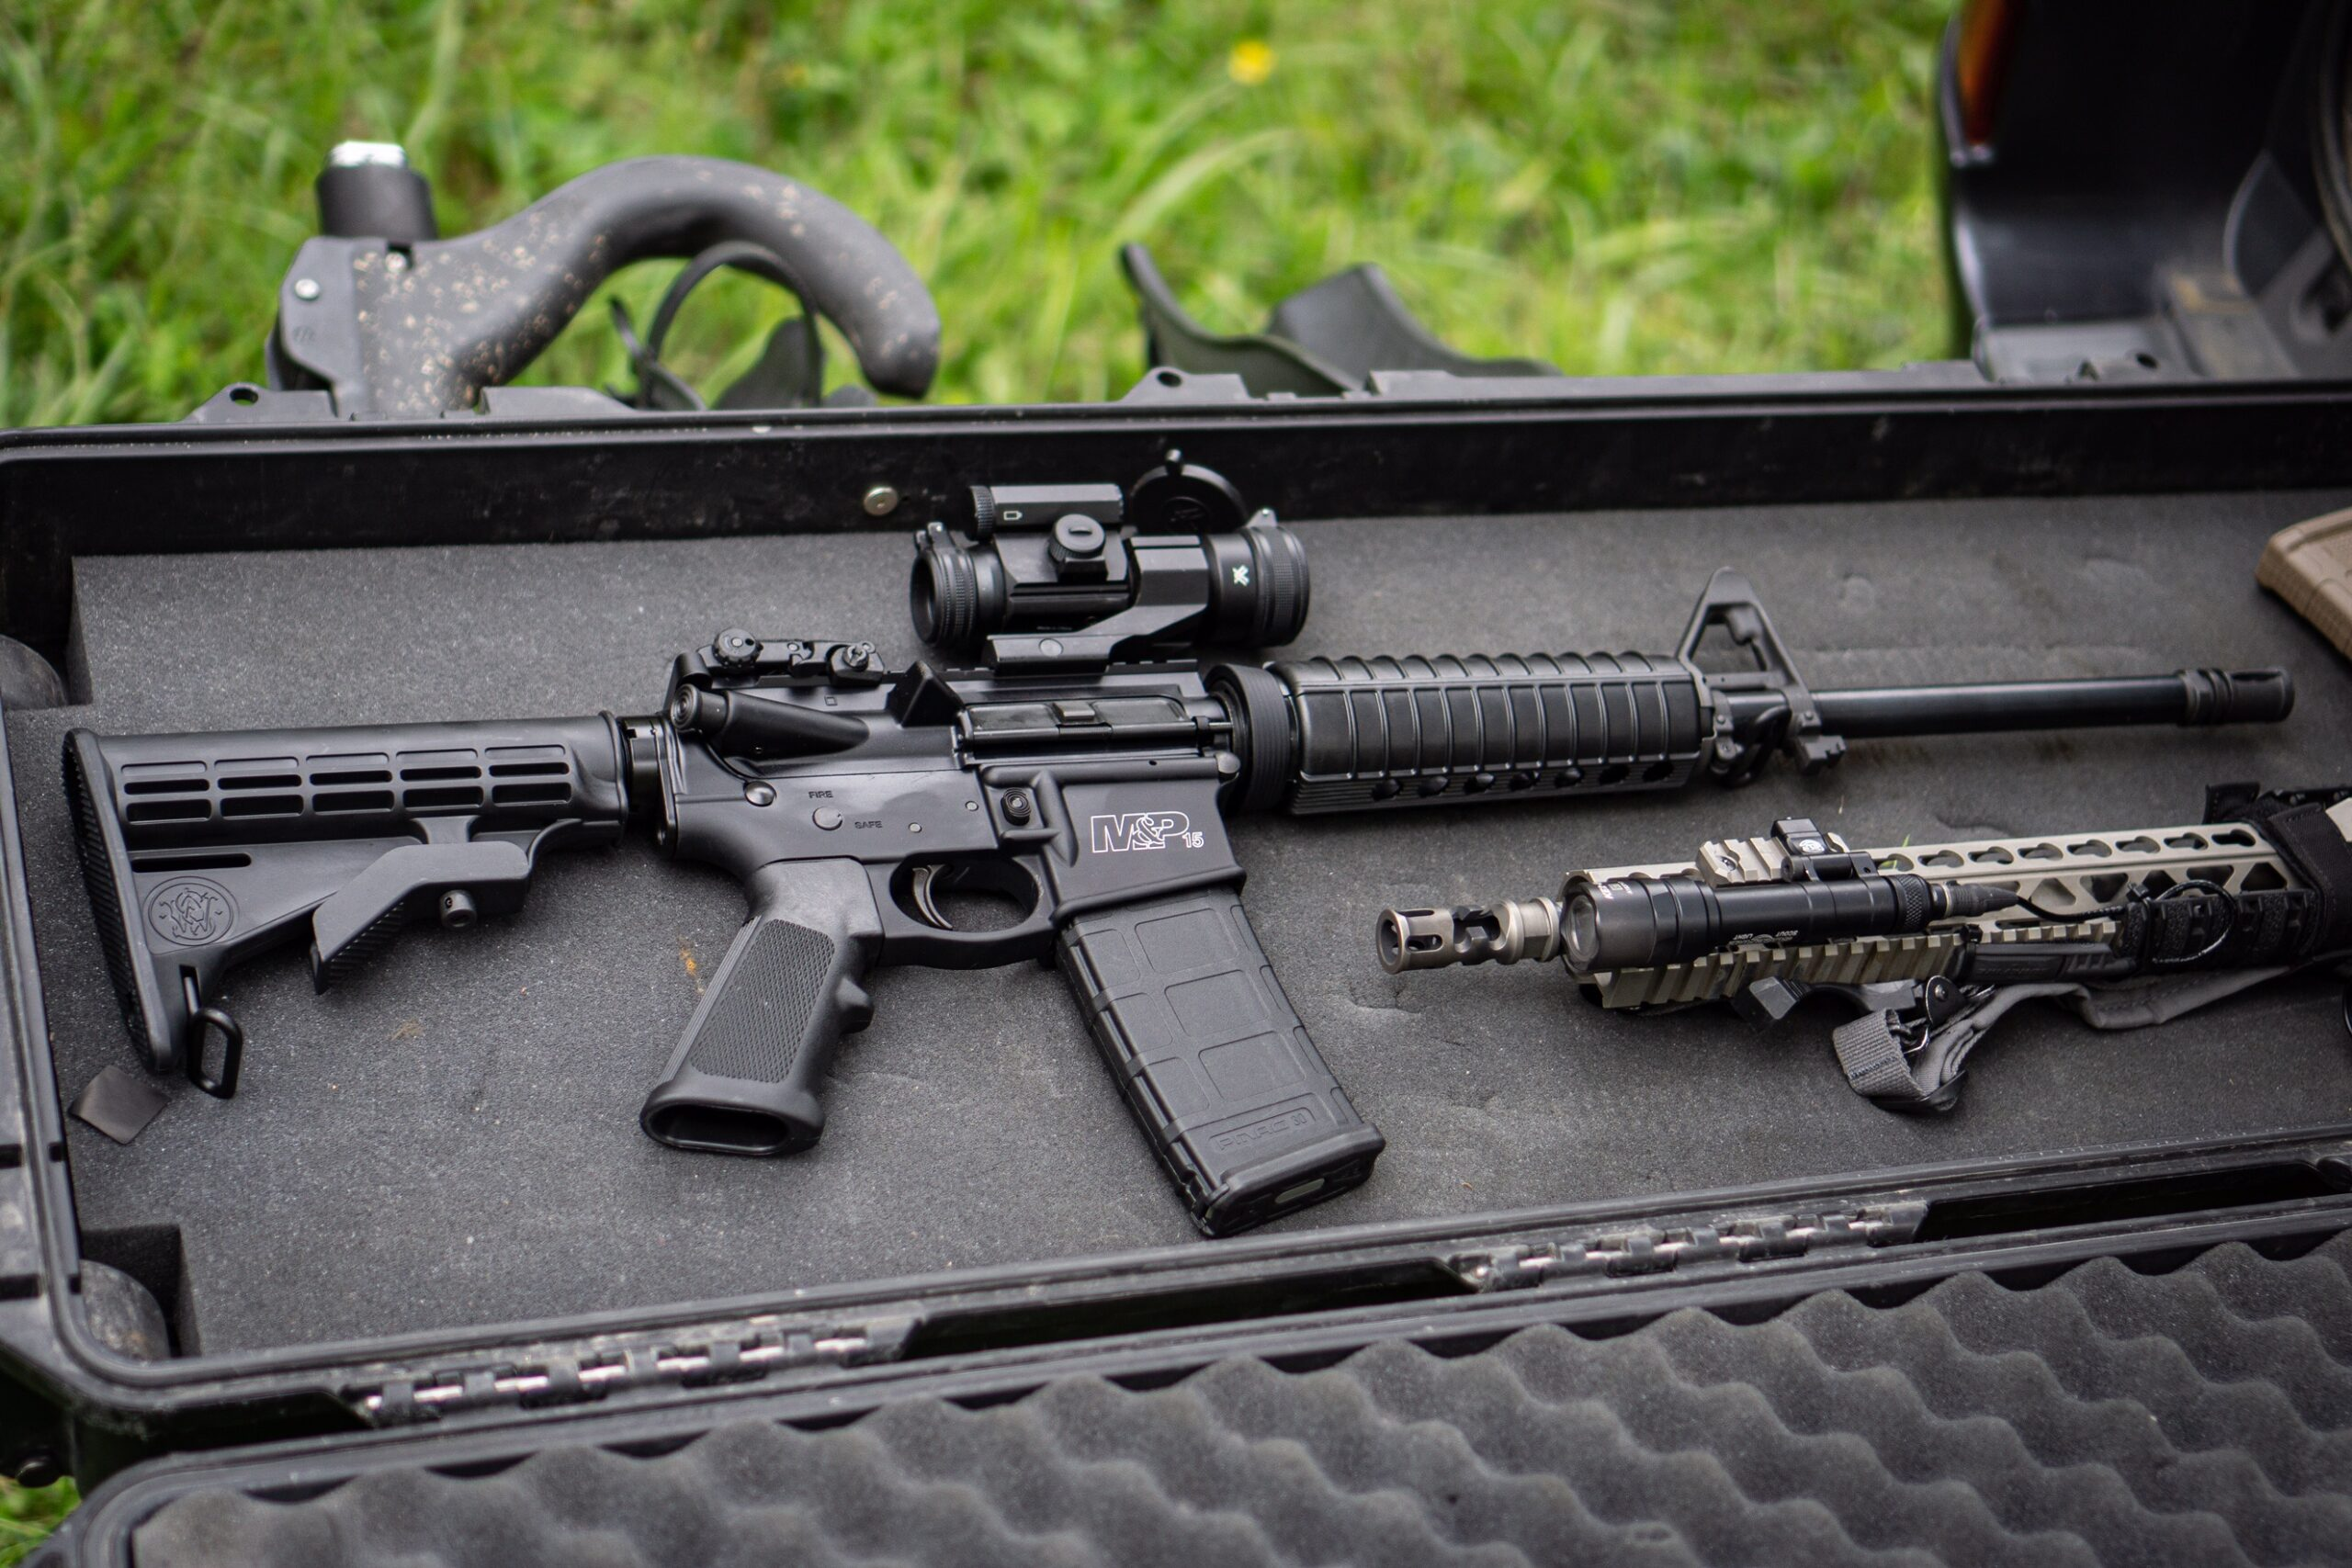 Smith and Wesson M&P 15 Sport 2 AR-15 in a gun case